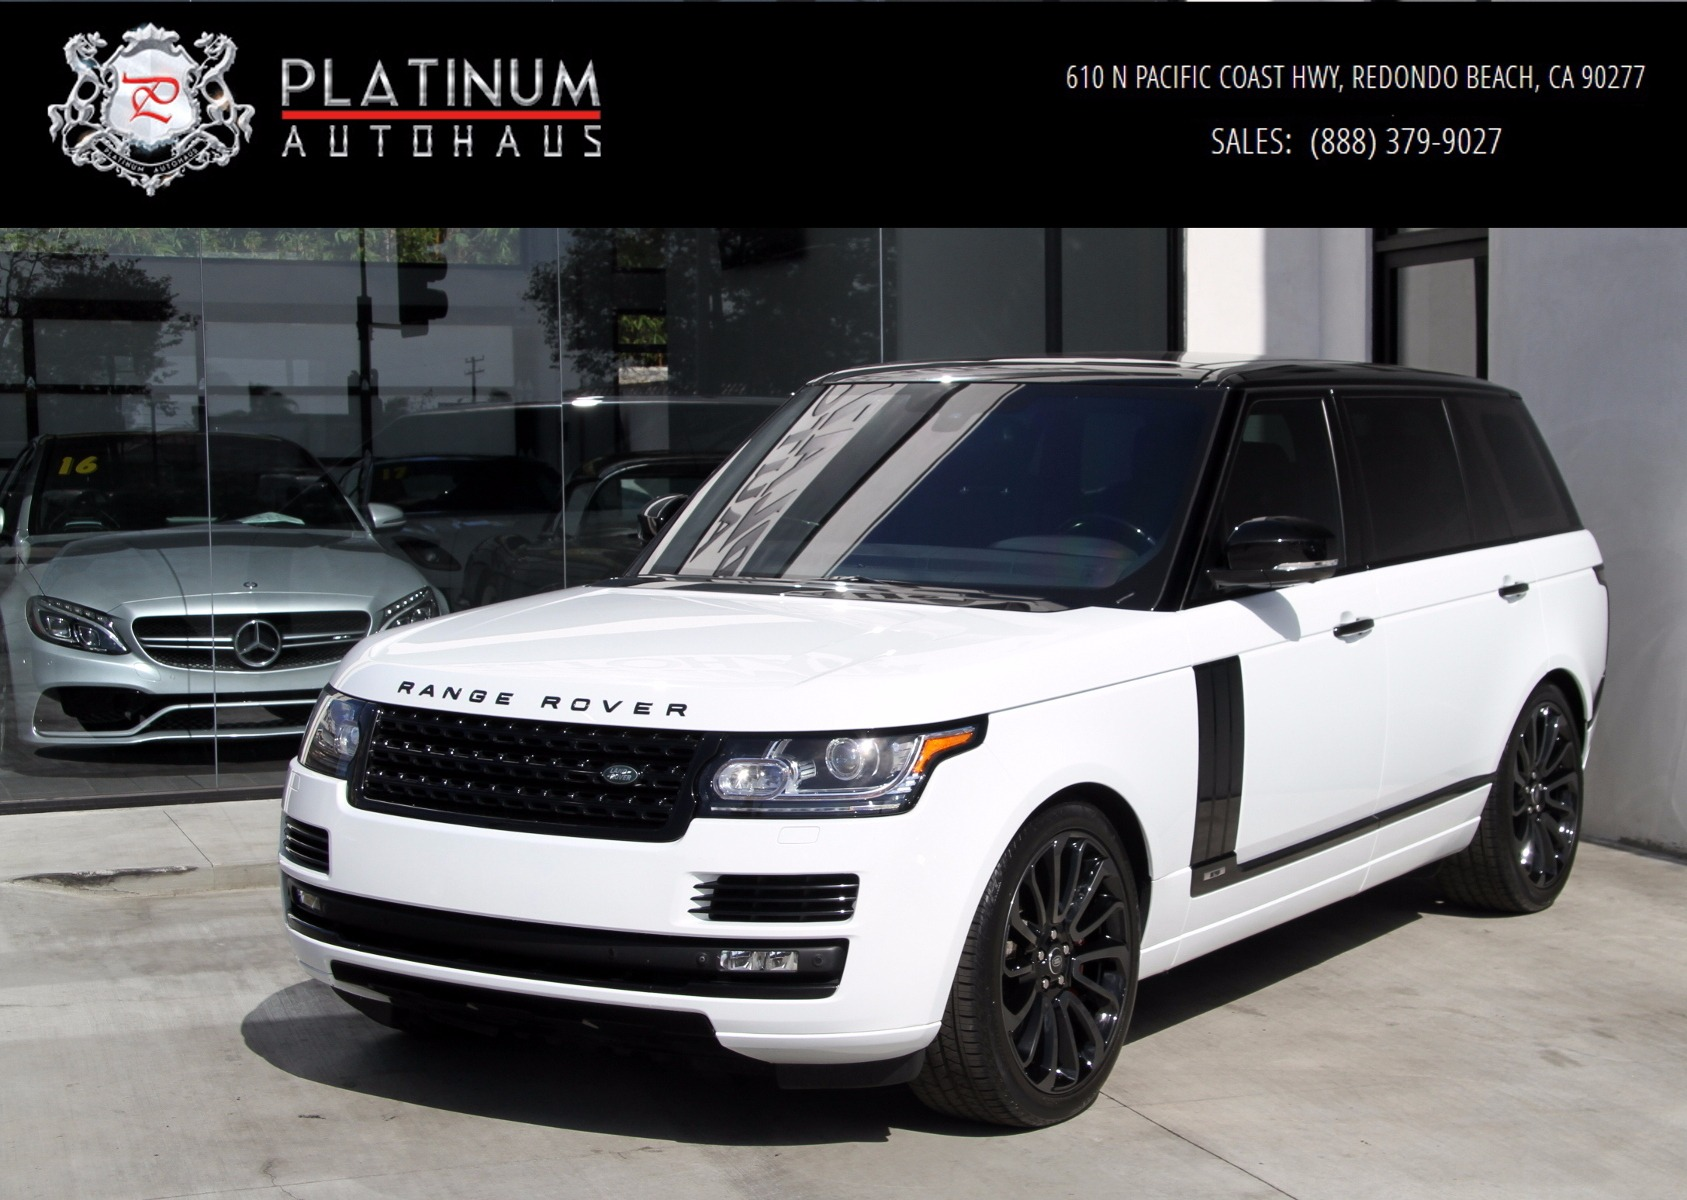 Range Rover Used >> 2015 Land Rover Range Rover Supercharged Long Wheel Base